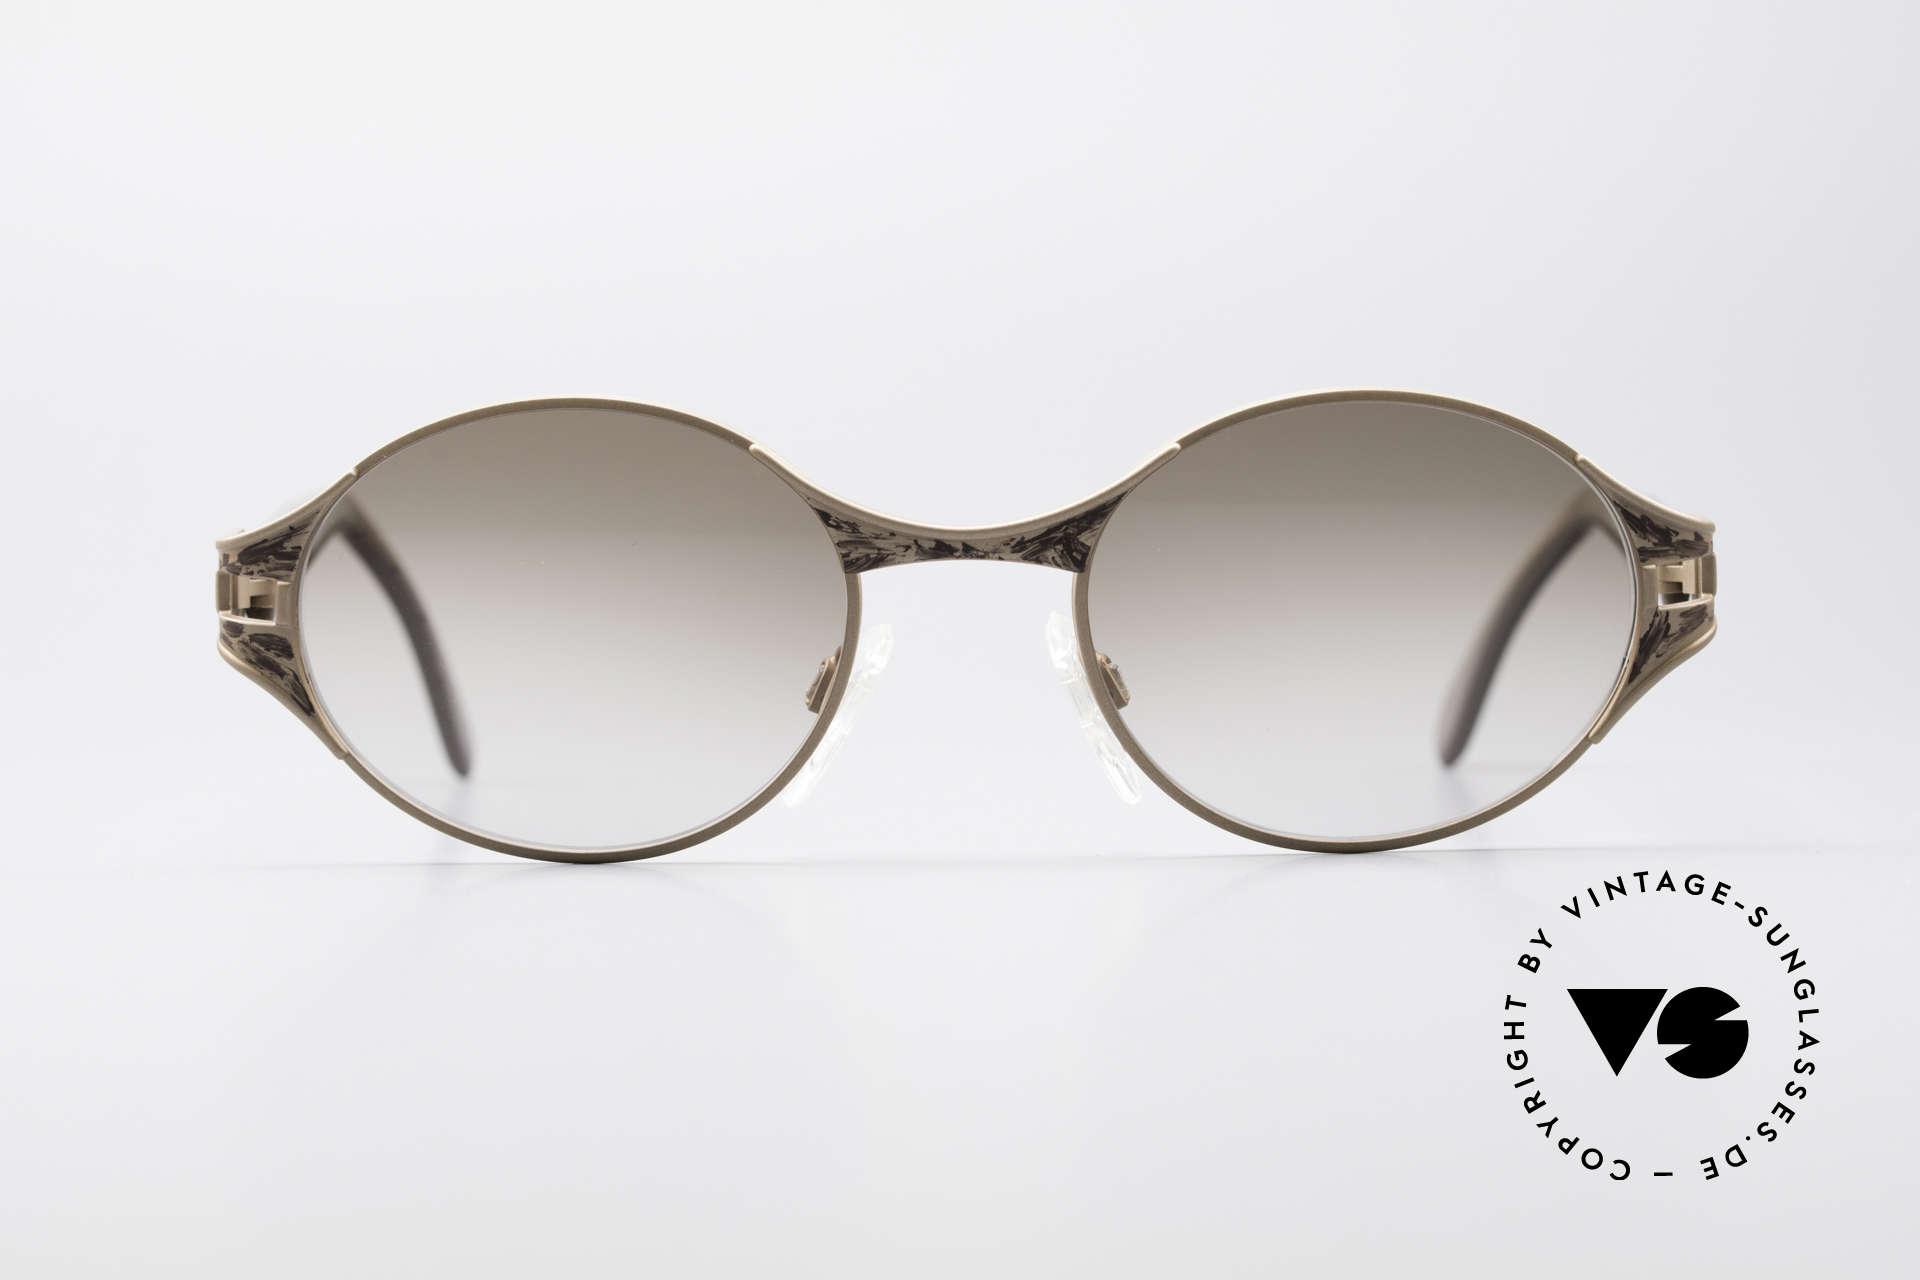 Cazal 281 90's Sunglasses Oval Round, excellent combination of various design elements, Made for Women